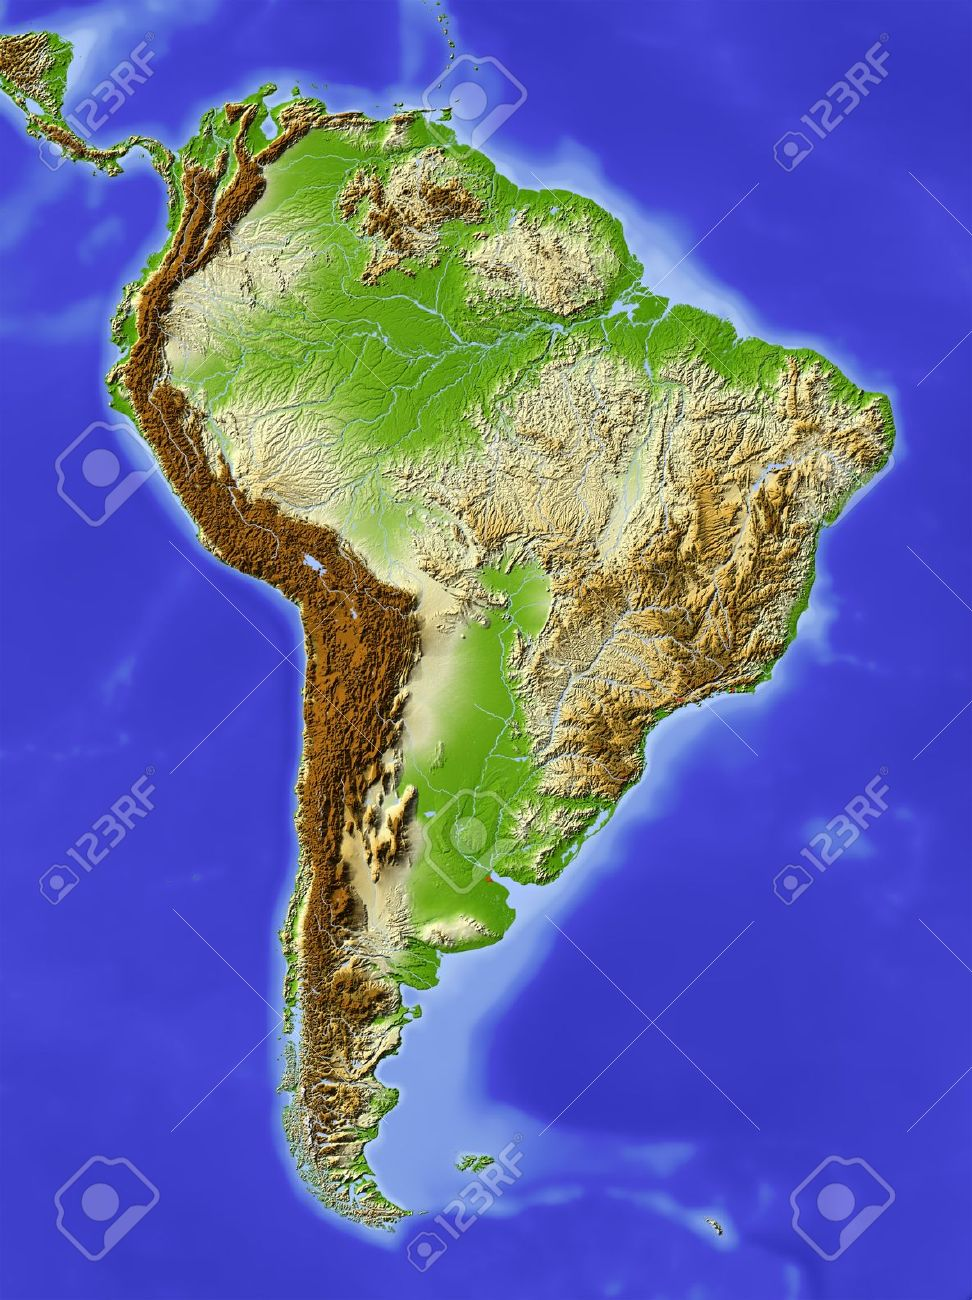 South America Shaded Relief Map Colored According To Elevation - South america relief map peru